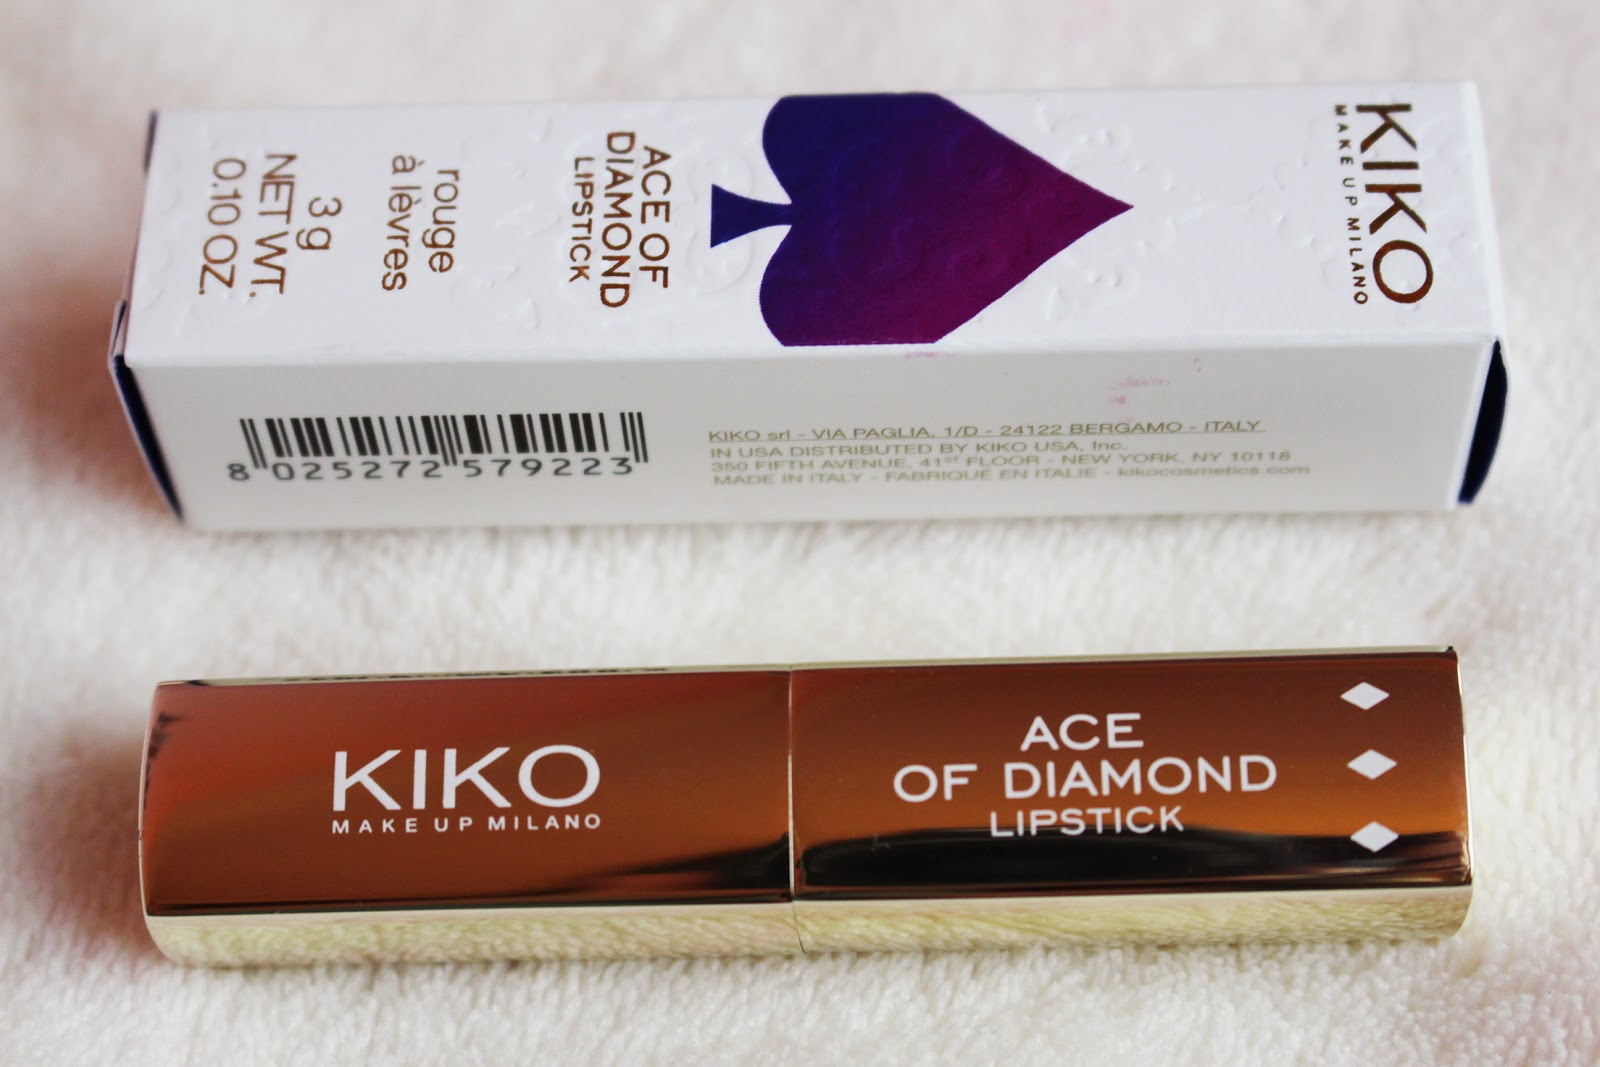 Kiko Ace of Diamond lipstick 27